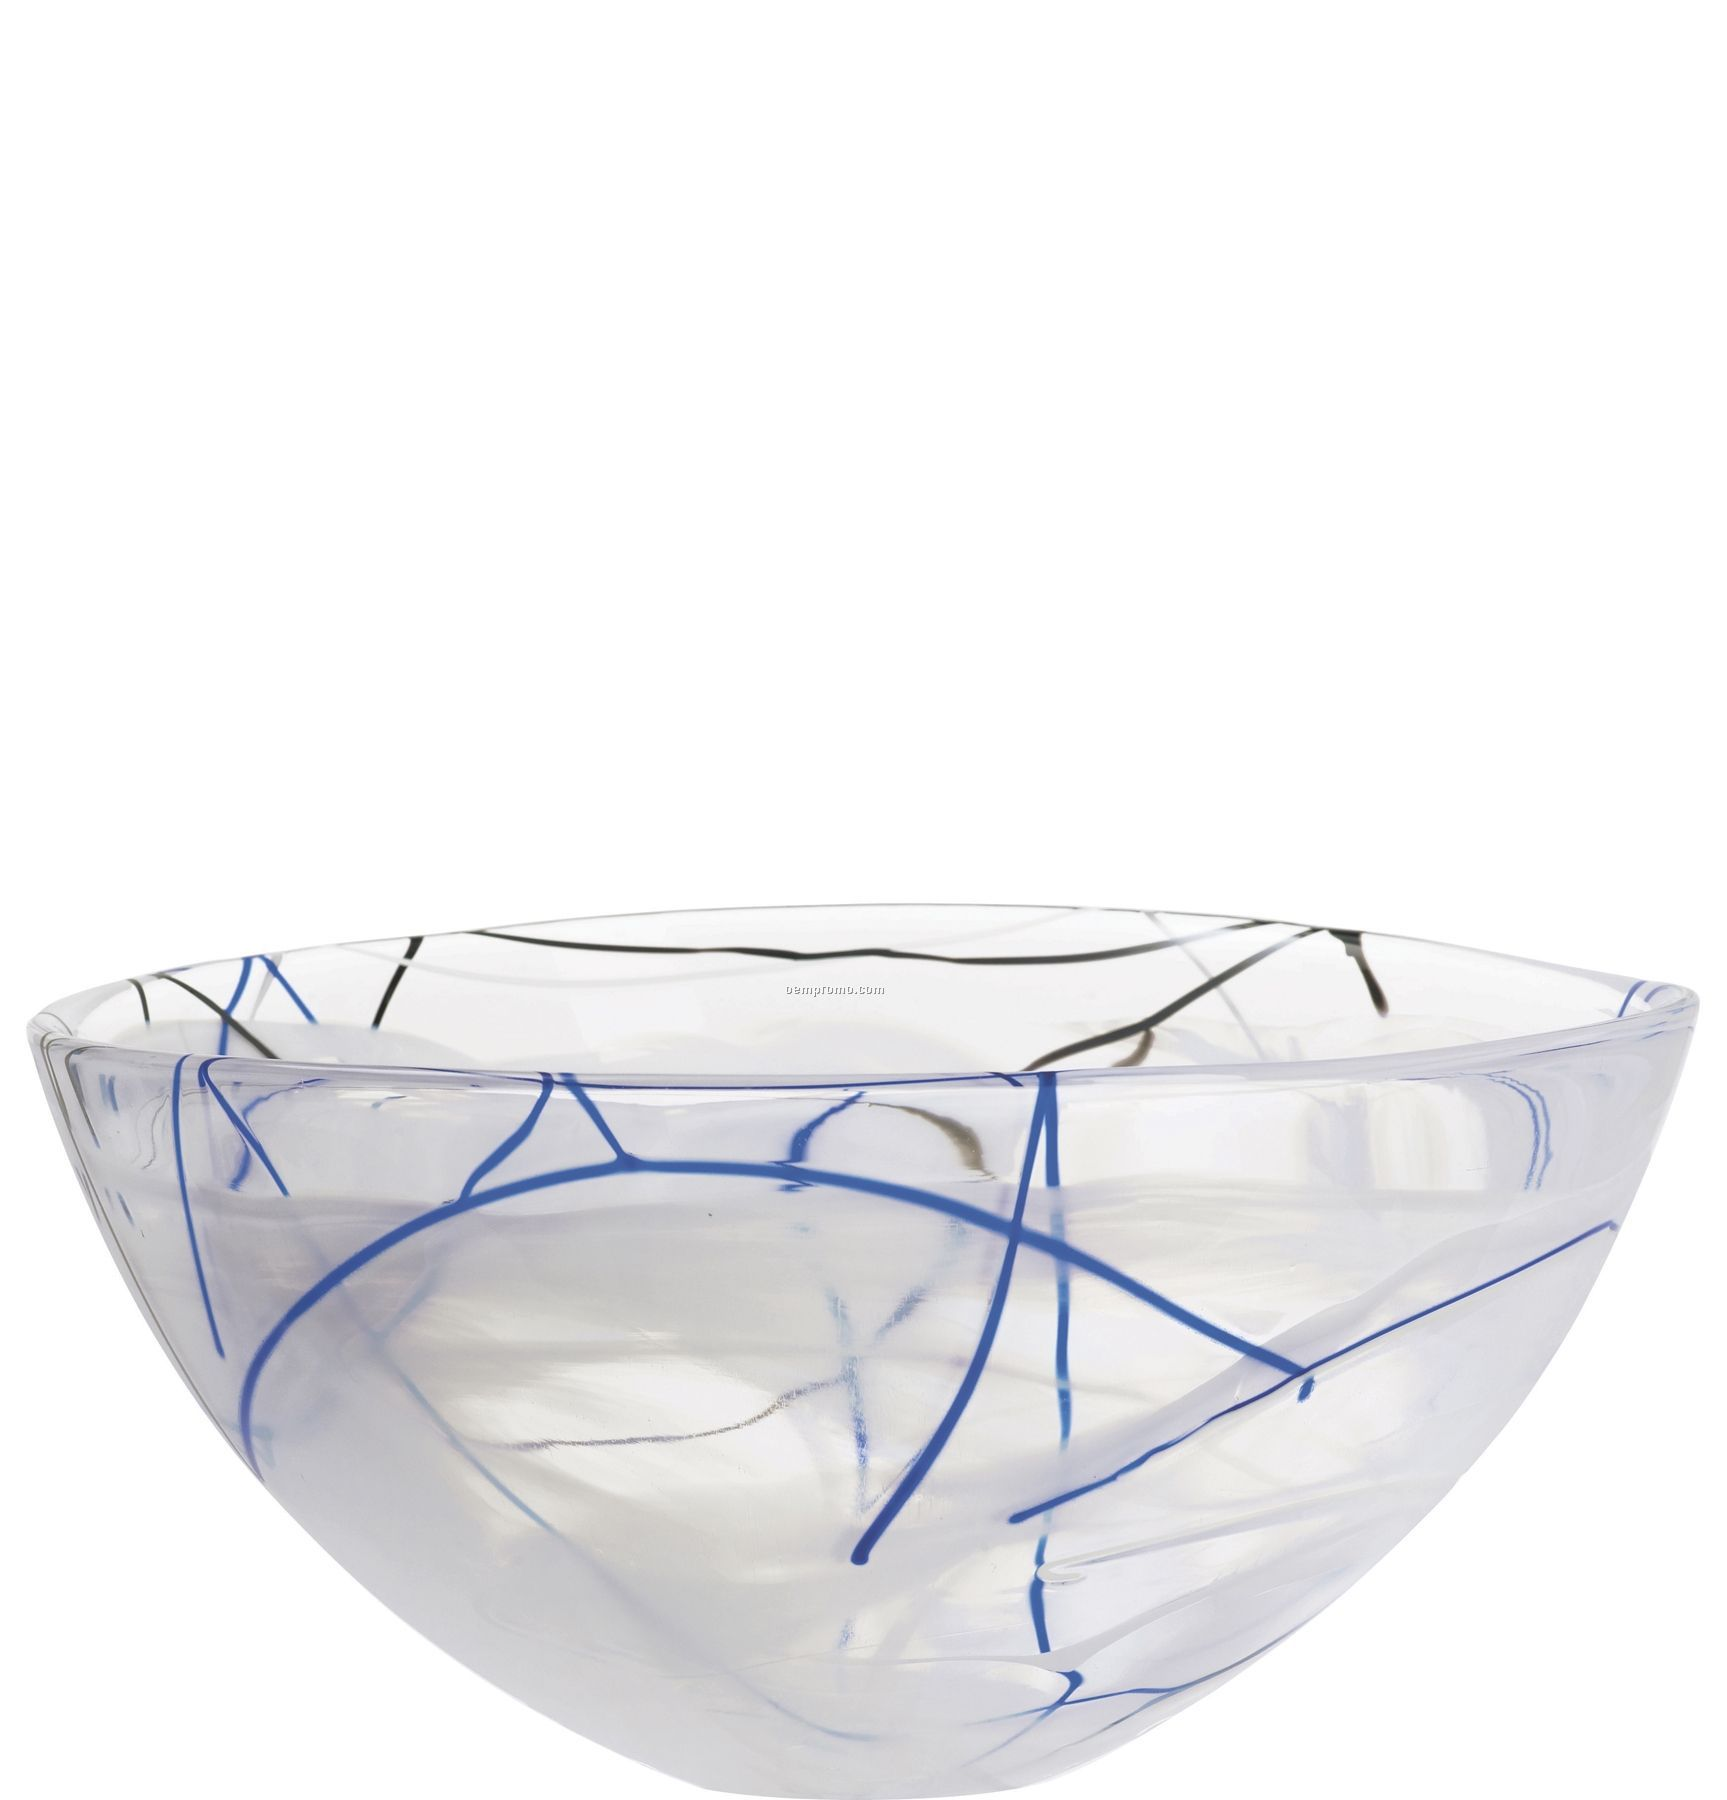 Contrast Large Swirl Crystal Bowl By Anna Ehrner (White)